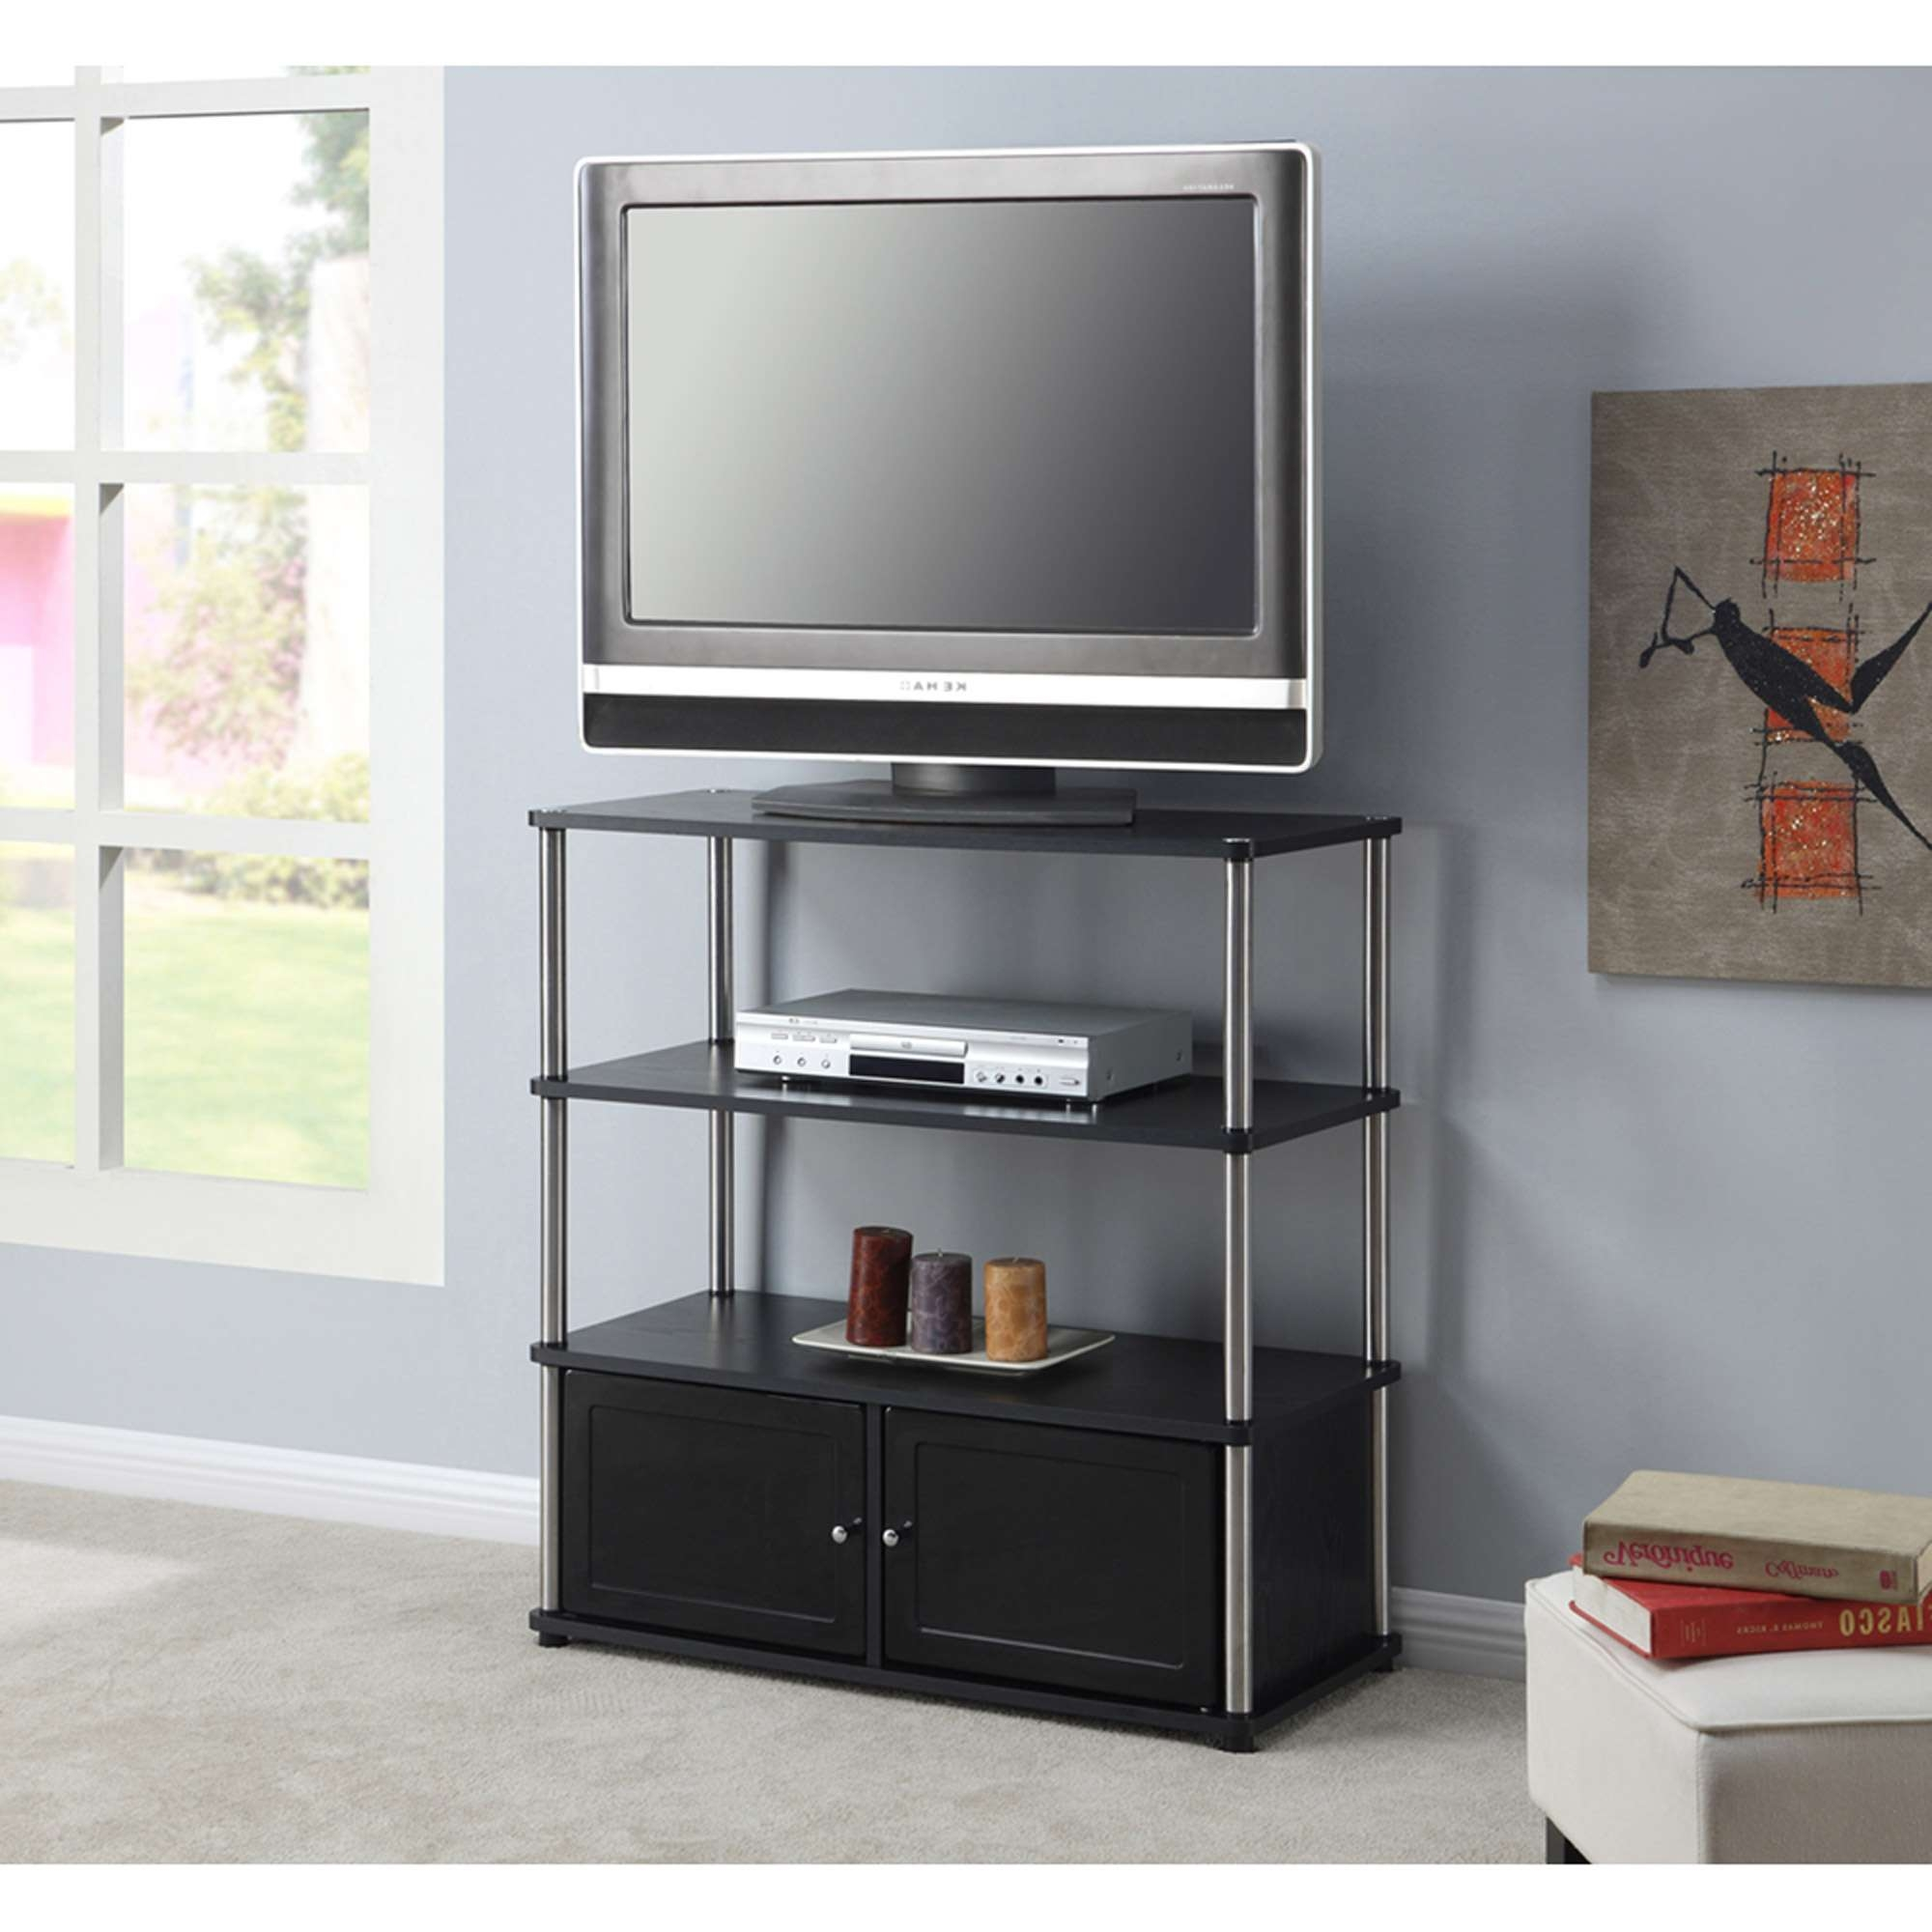 Tall Tv Stand In Tall Skinny Tv Stands (View 5 of 15)